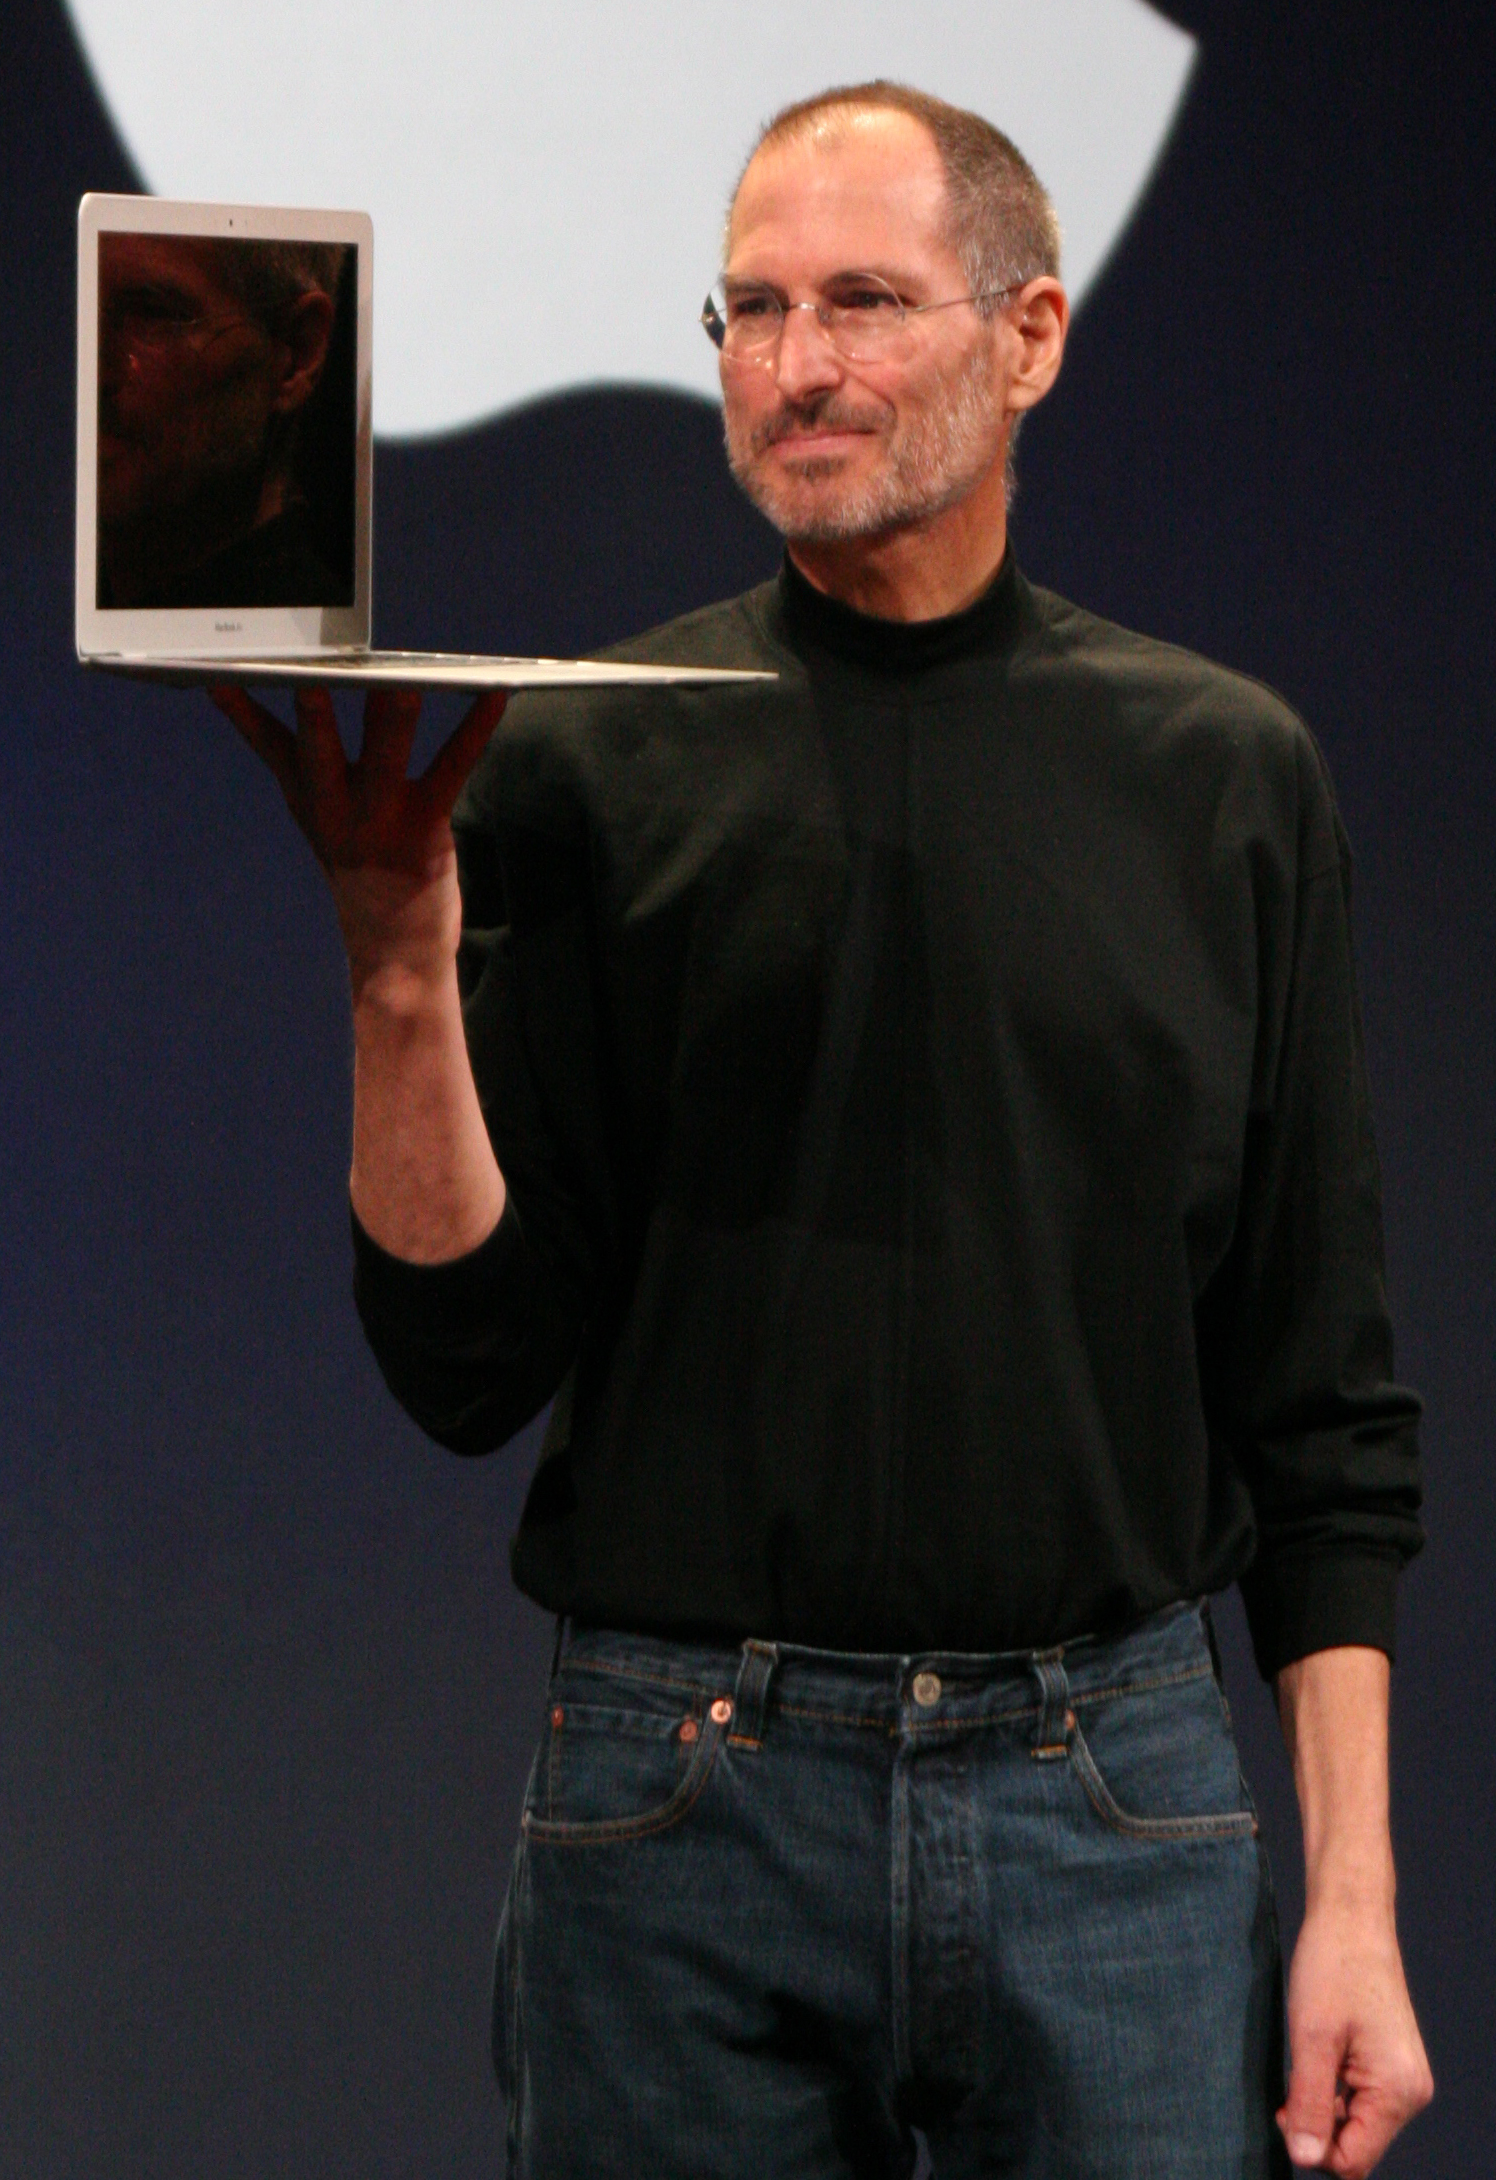 Wikimedia picture of Steve Jobs